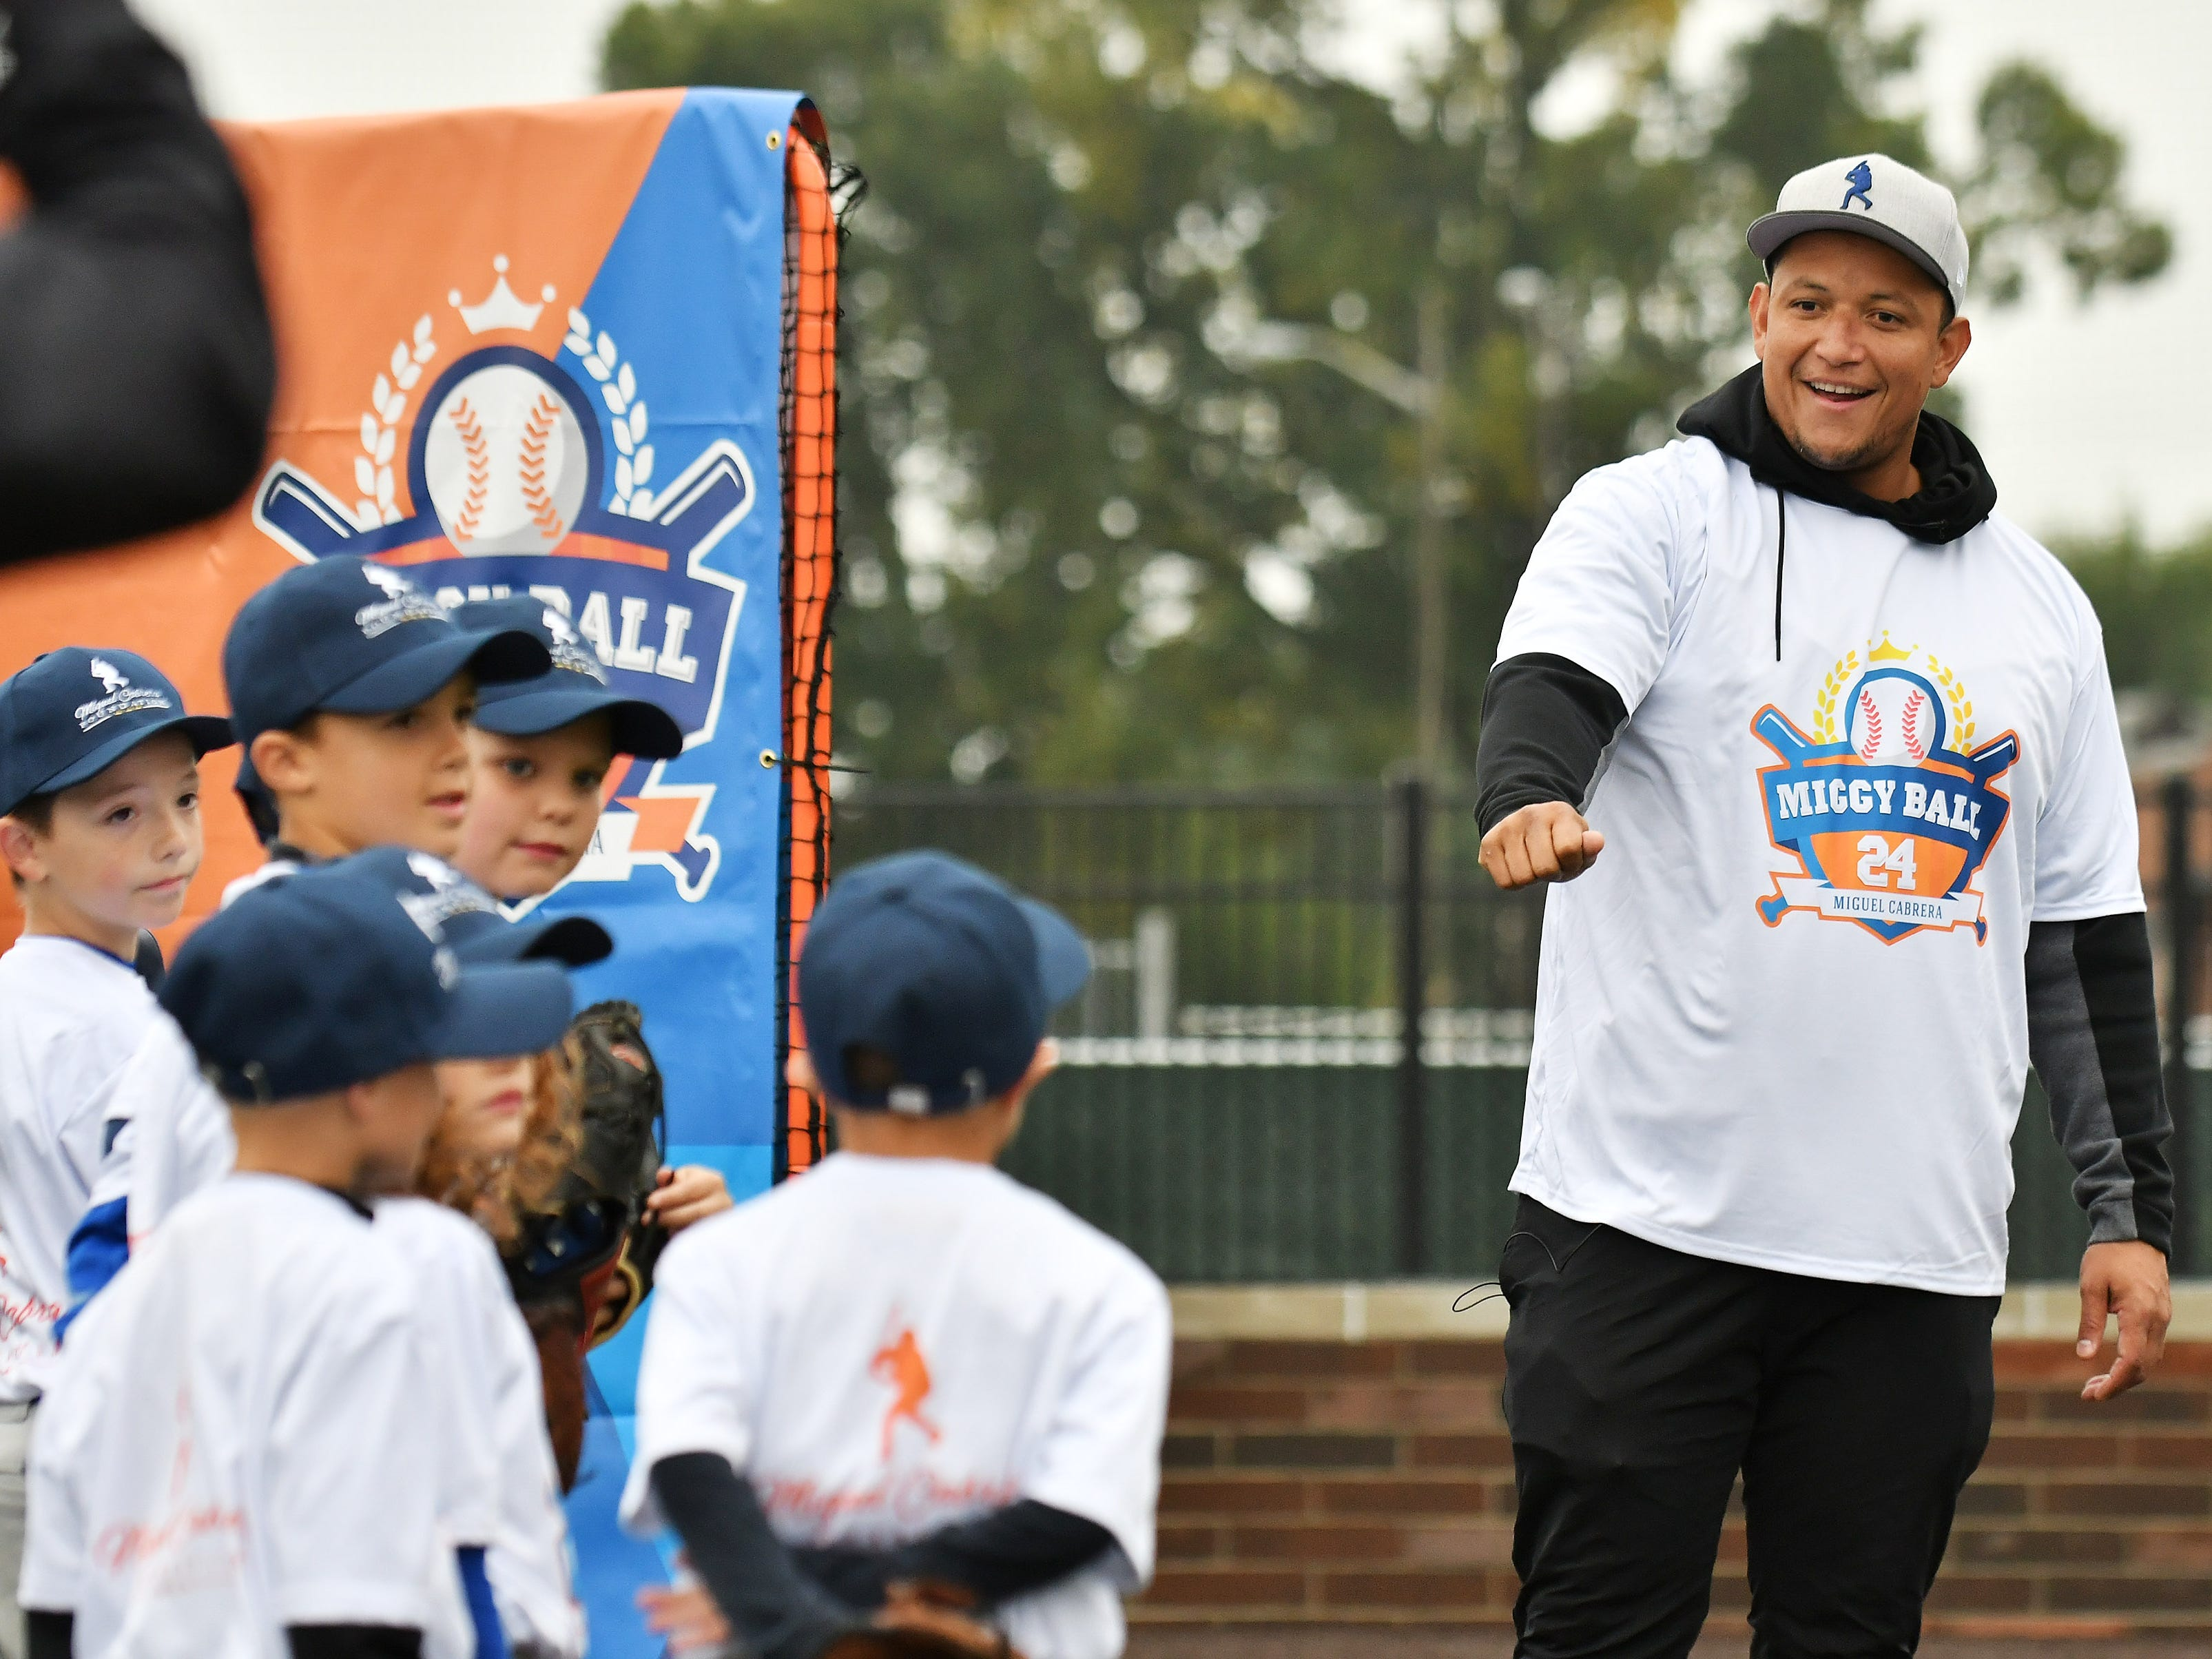 Tigers' Miguel Cabrera greets the kids at the Miggy Ball 24 event.